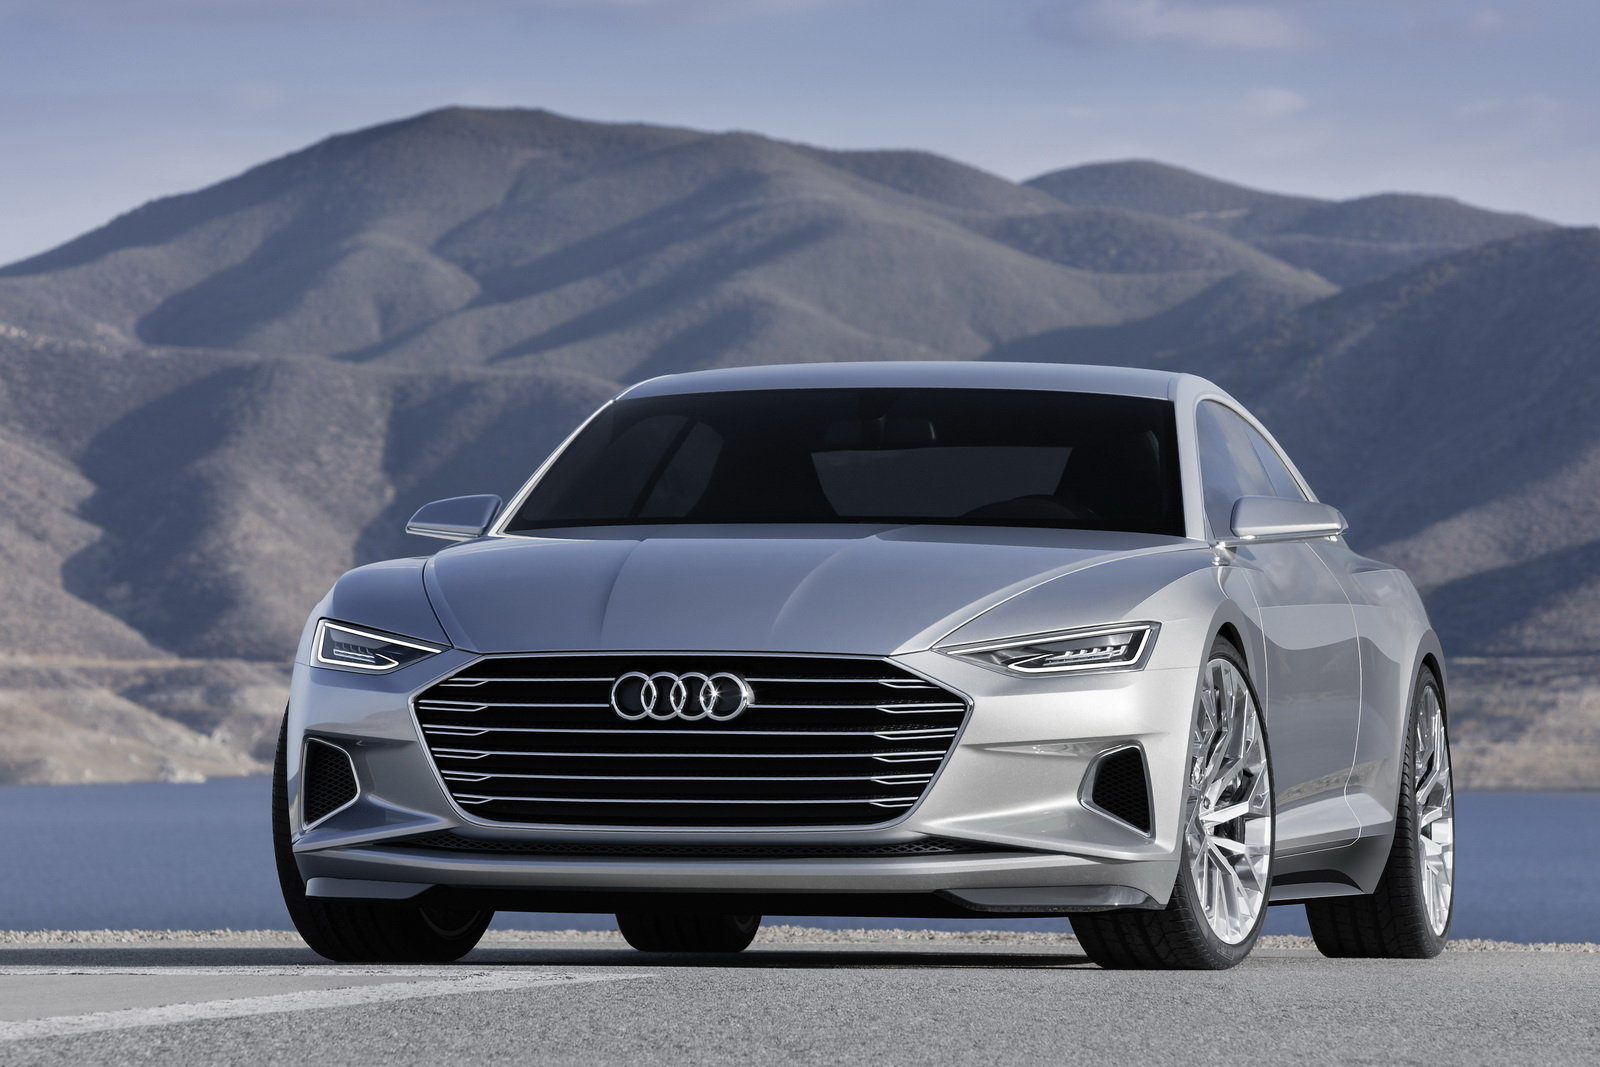 Audi a7 2017 reportedly has a significant change in terms of outside design compared to previous models under the main command of head of design